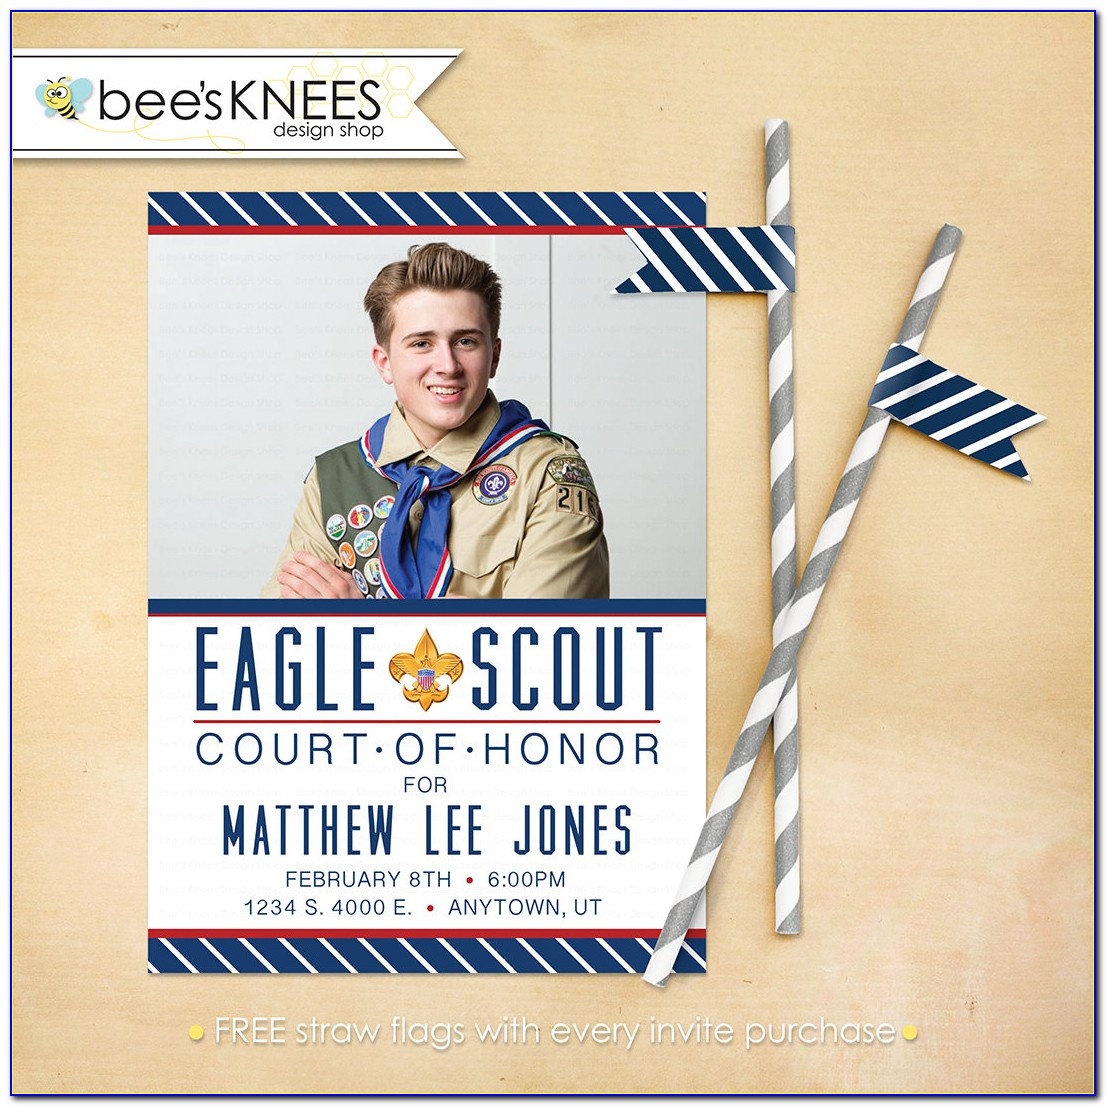 Boy Scout Eagle Court Of Honor Invitation Template